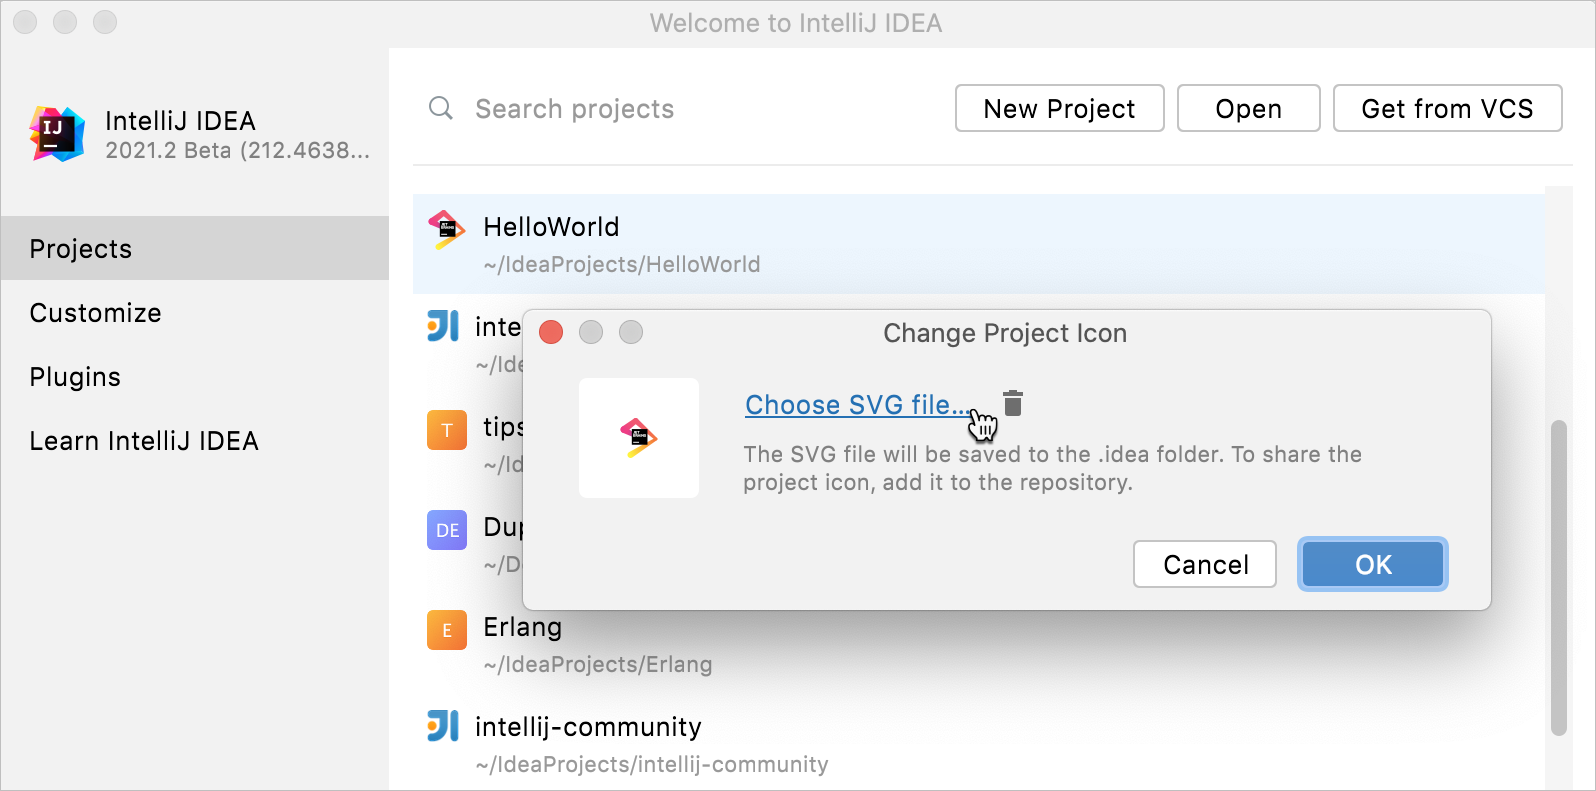 Changing project icon on Welcome screen